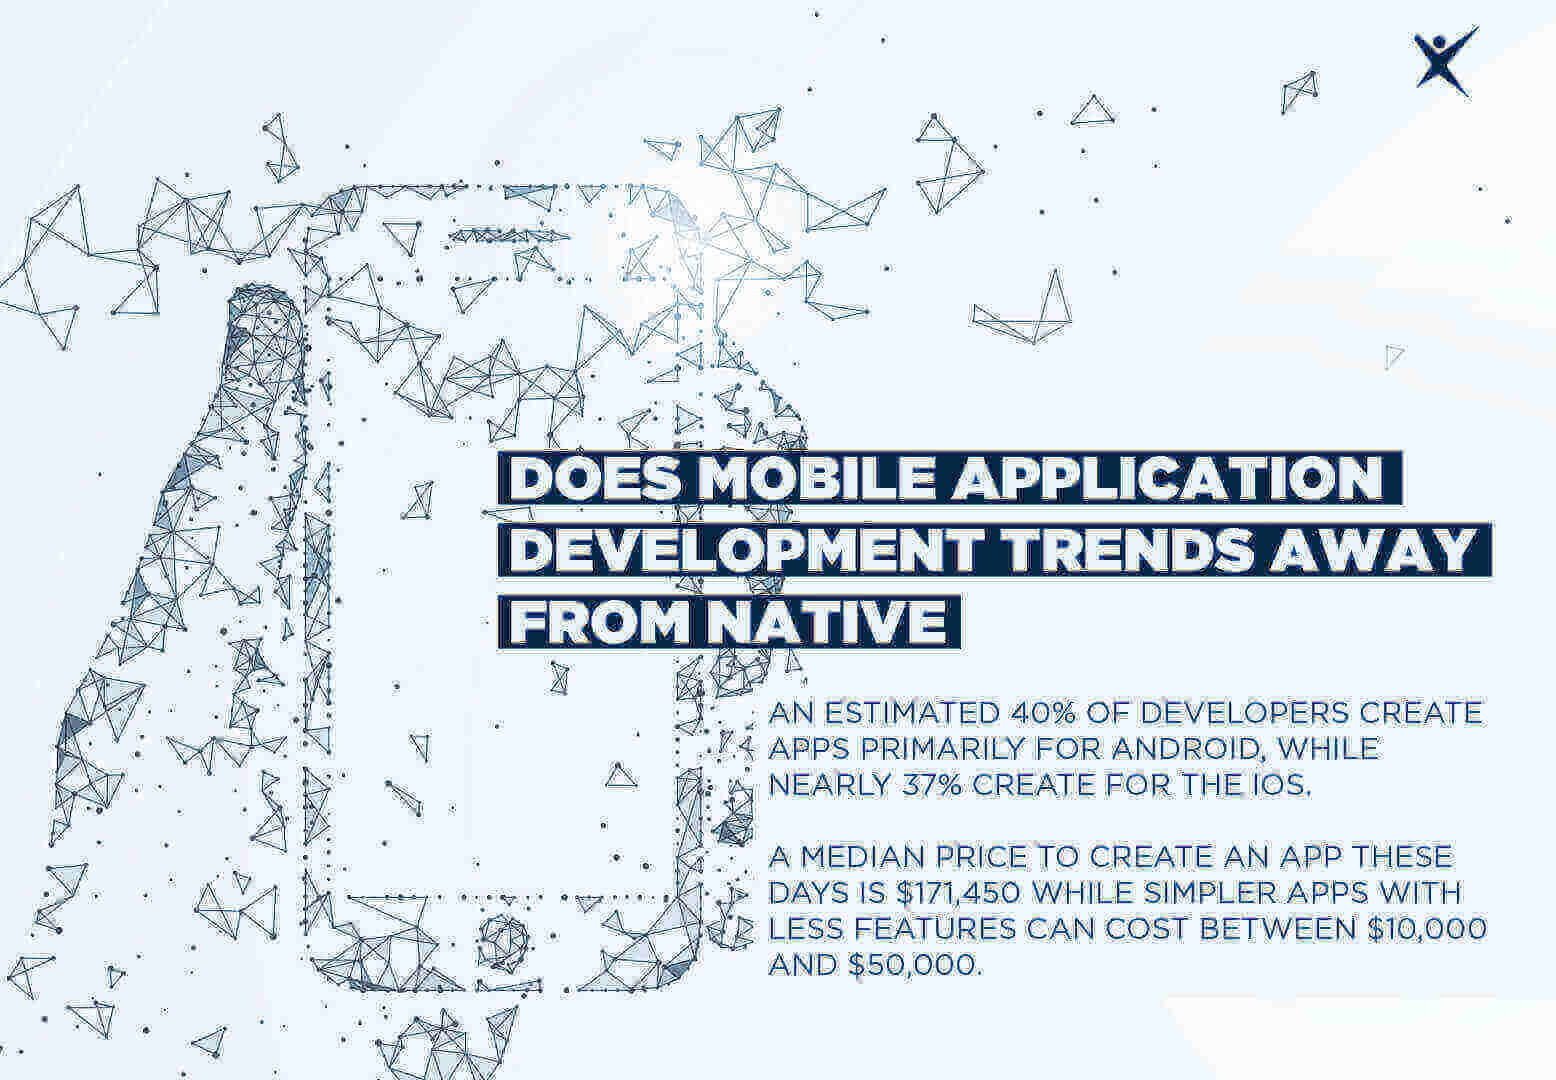 Mobile Application Development Trends Away From Native